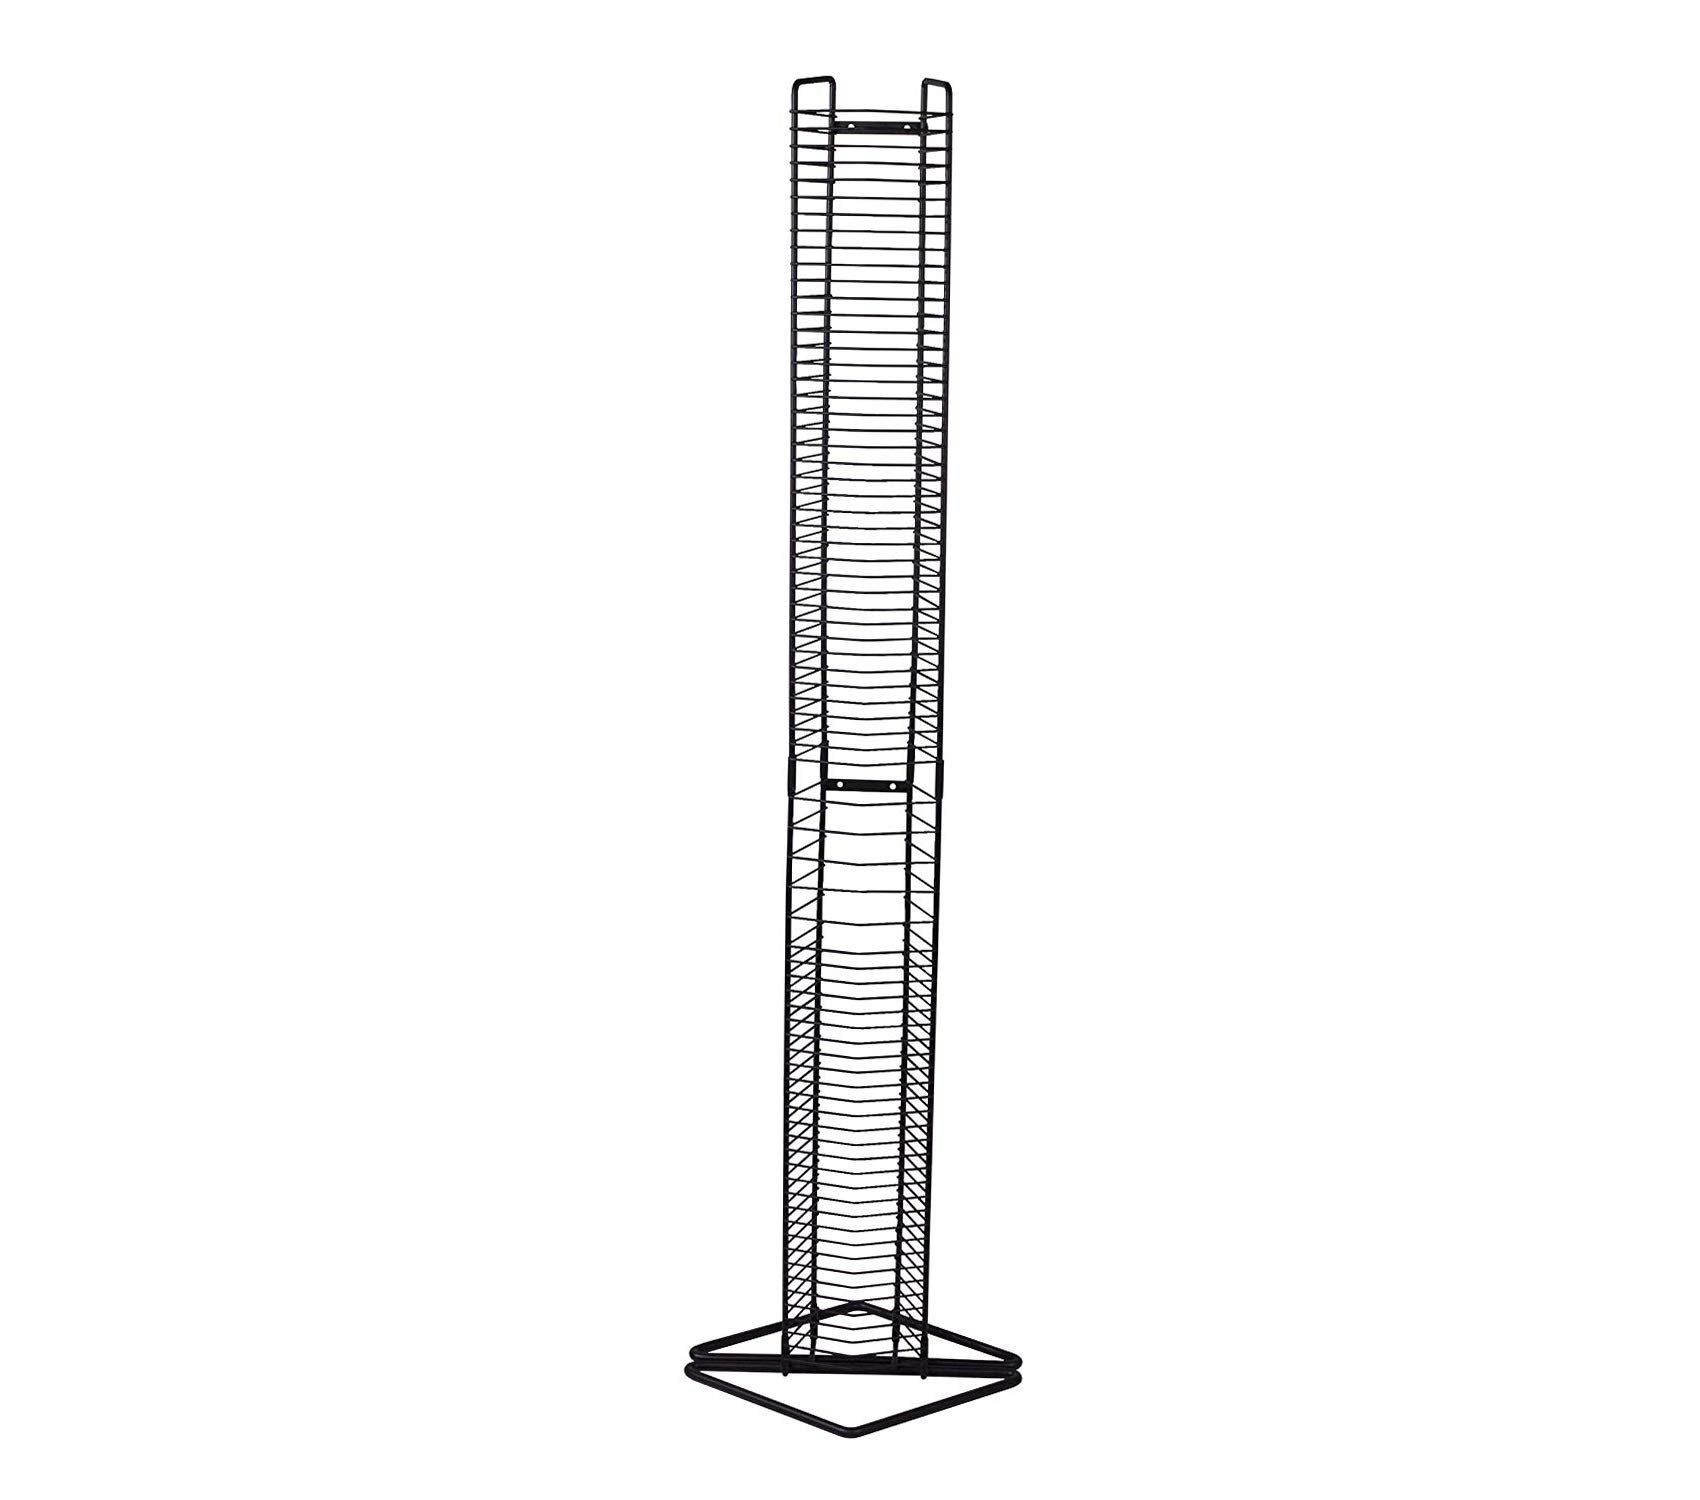 Wood & Style Office Home Furniture Premium Onyx 35 CD Tower Matte Black Steel by Wood & Style